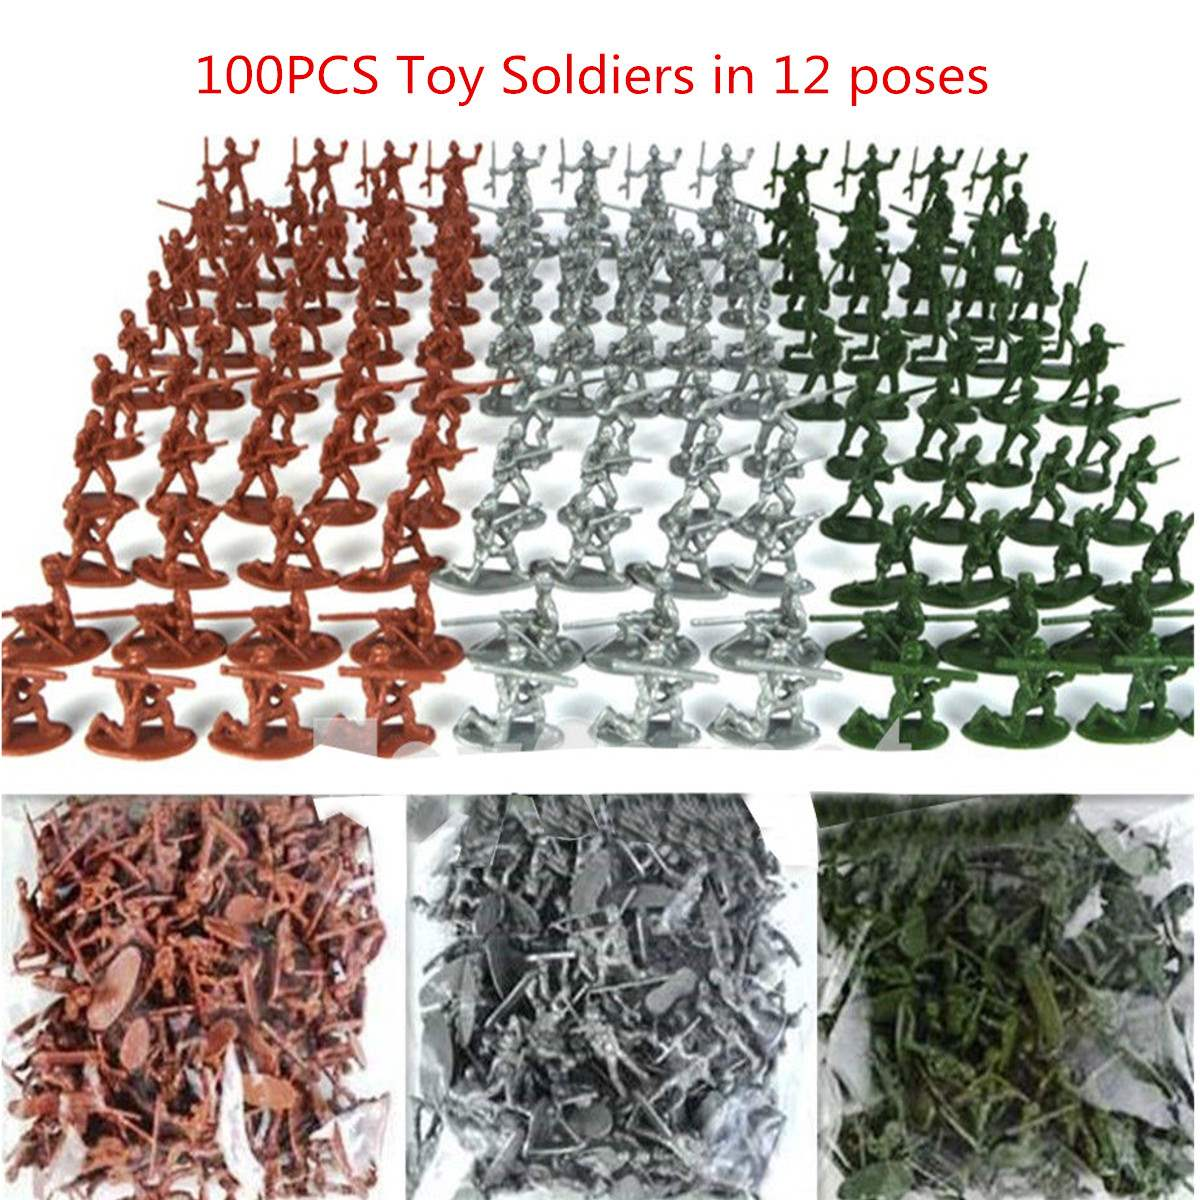 Lbla Soldier Model Sandbox Military Plastic Toy Soldier Models Army Men Toy Gifts For Children Boys Action & Toy Figures